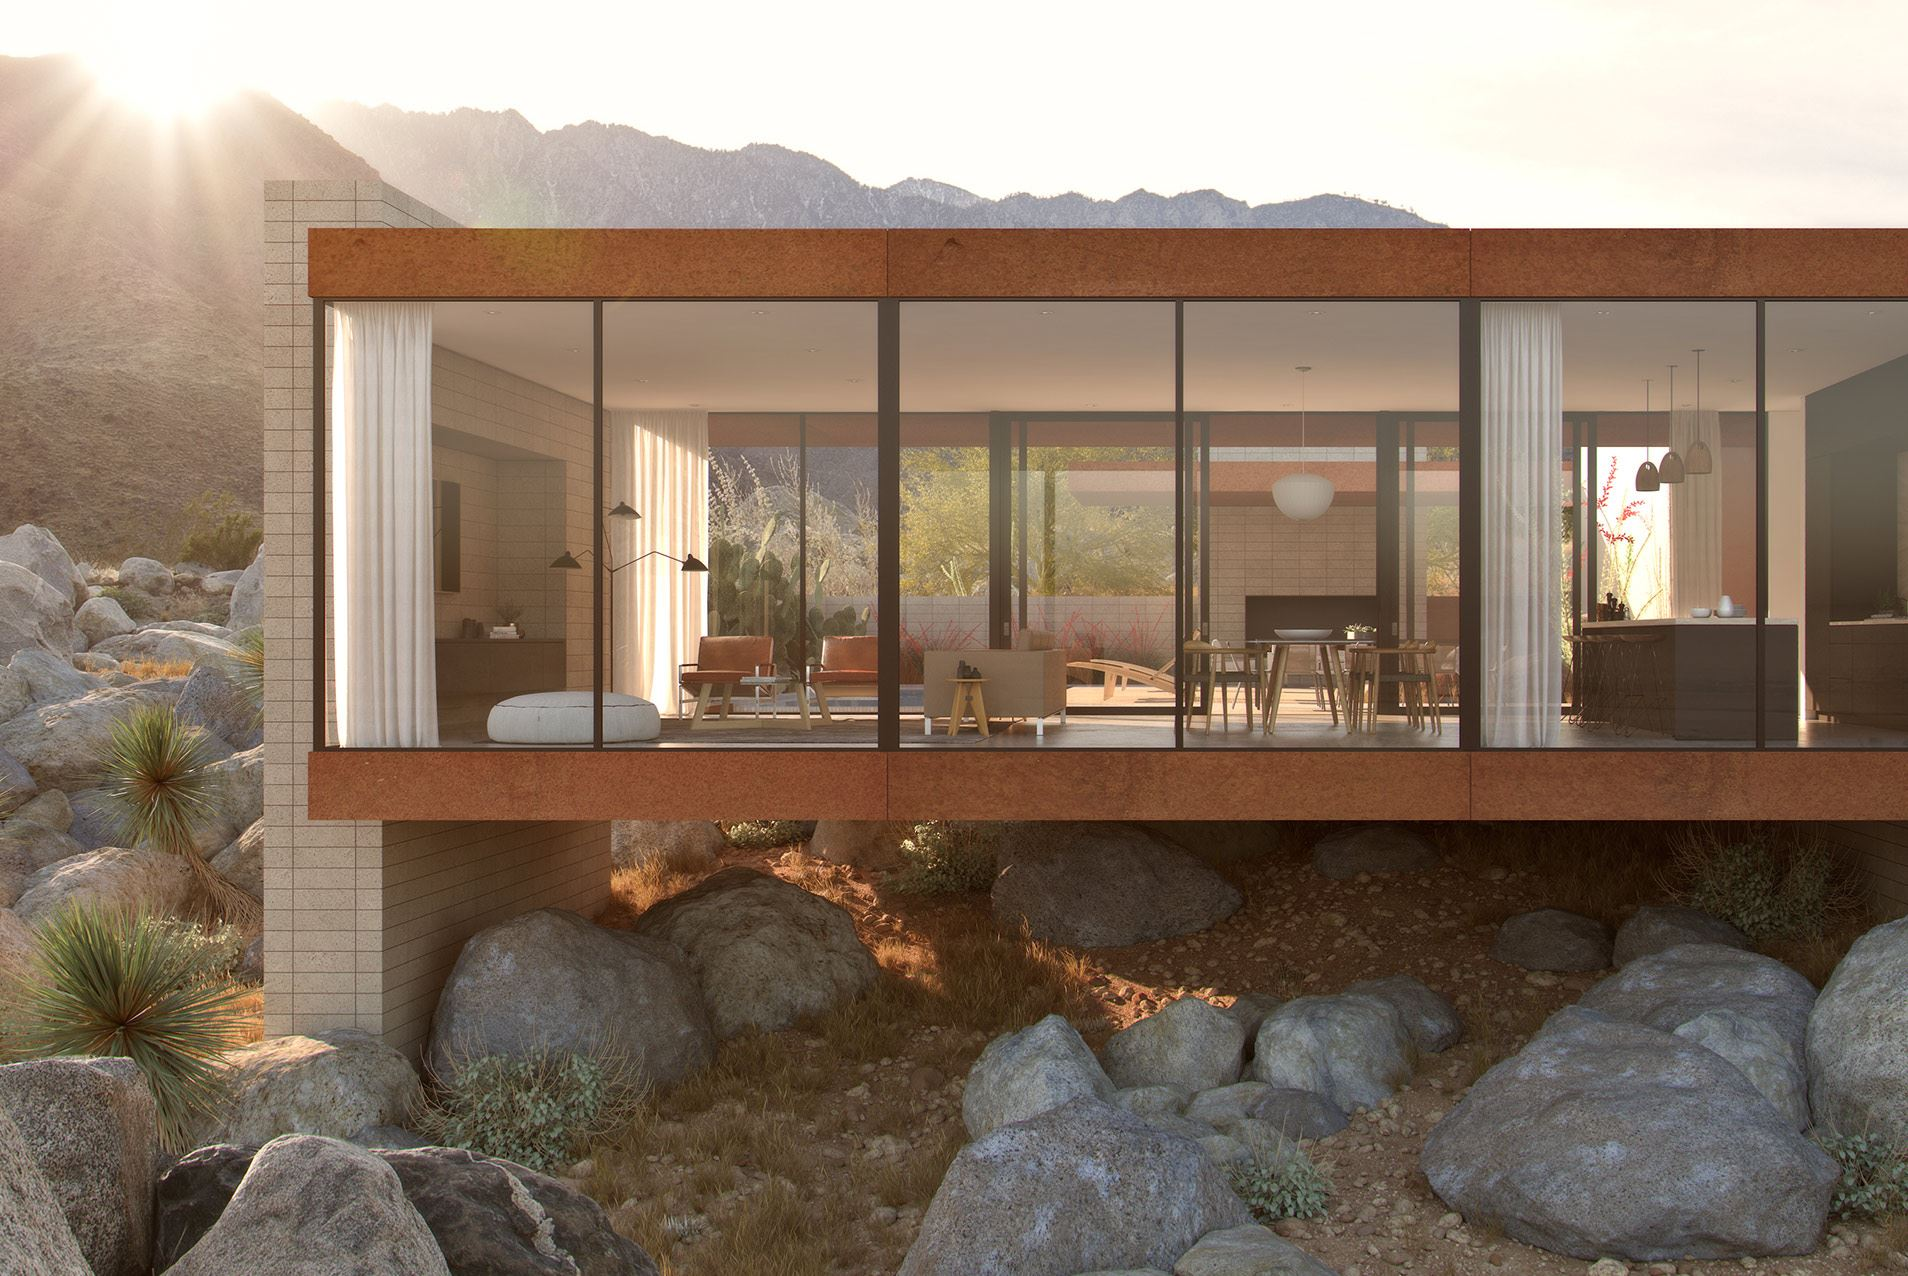 Desert Palisades Guardhouse, Palm Springs, California, by AR&D Architects, completed 2016